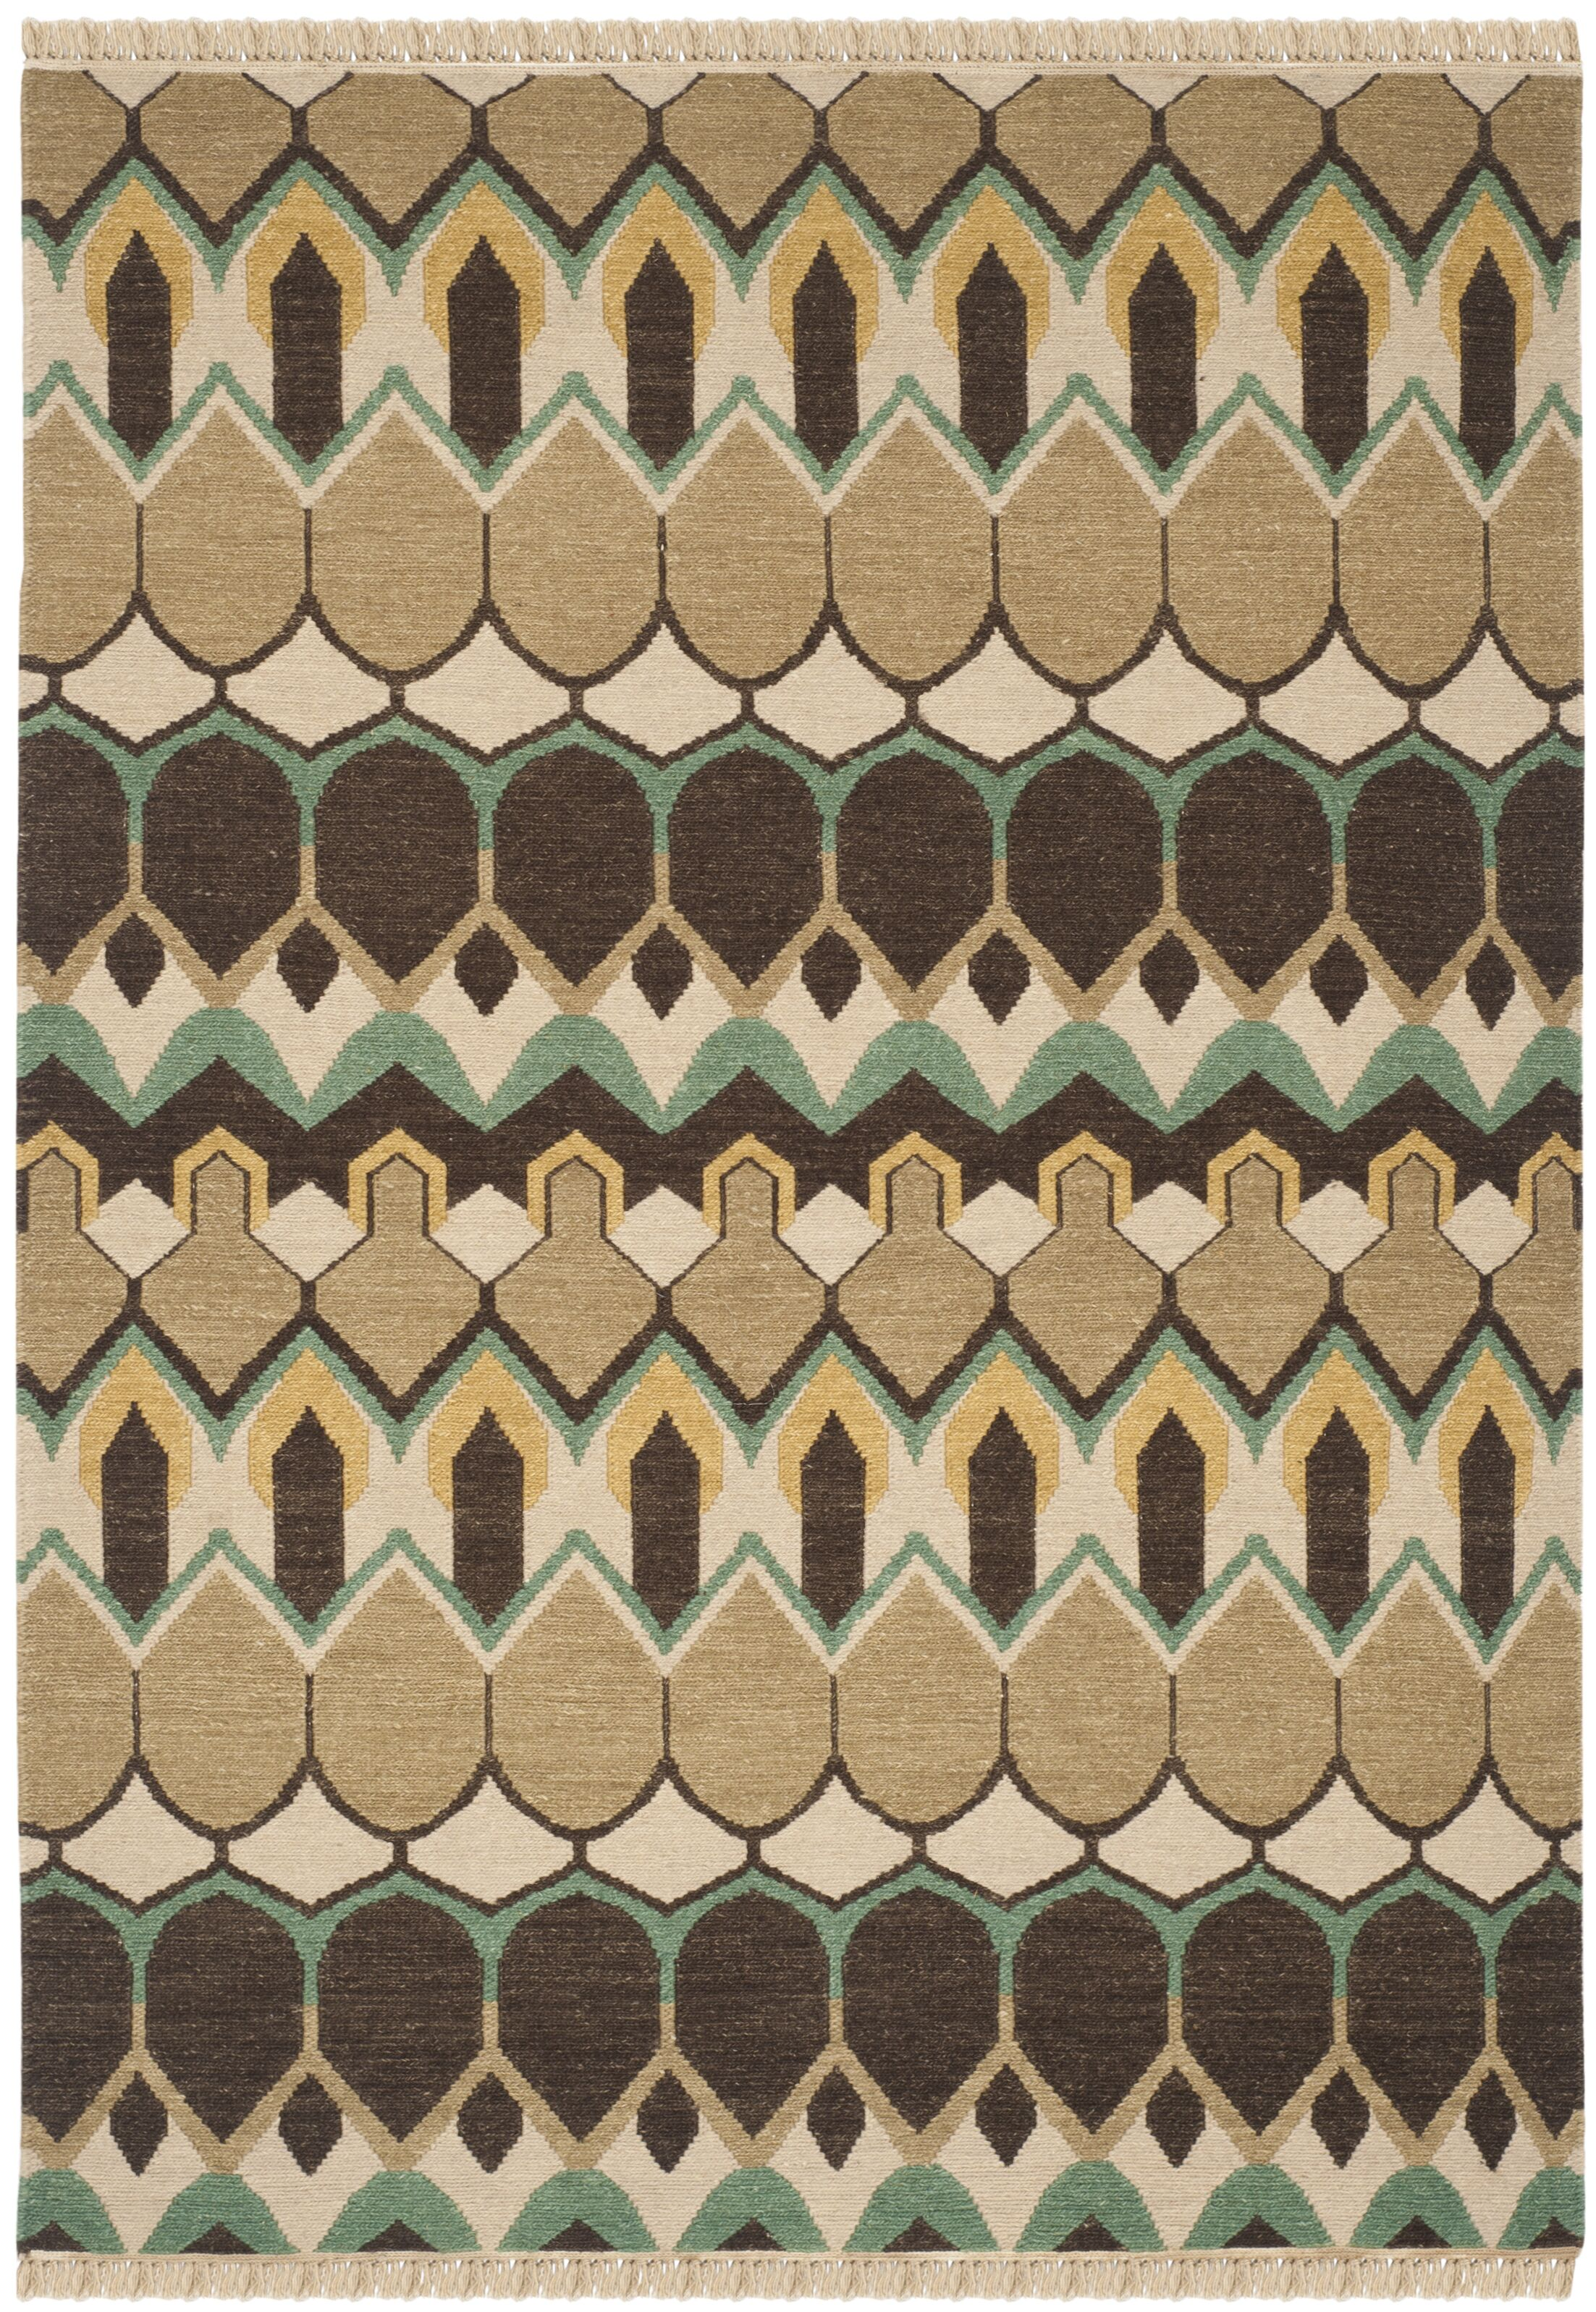 Saint-Paul Beige / Brown Area Rug Rug Size: Rectangle 6' x 9'